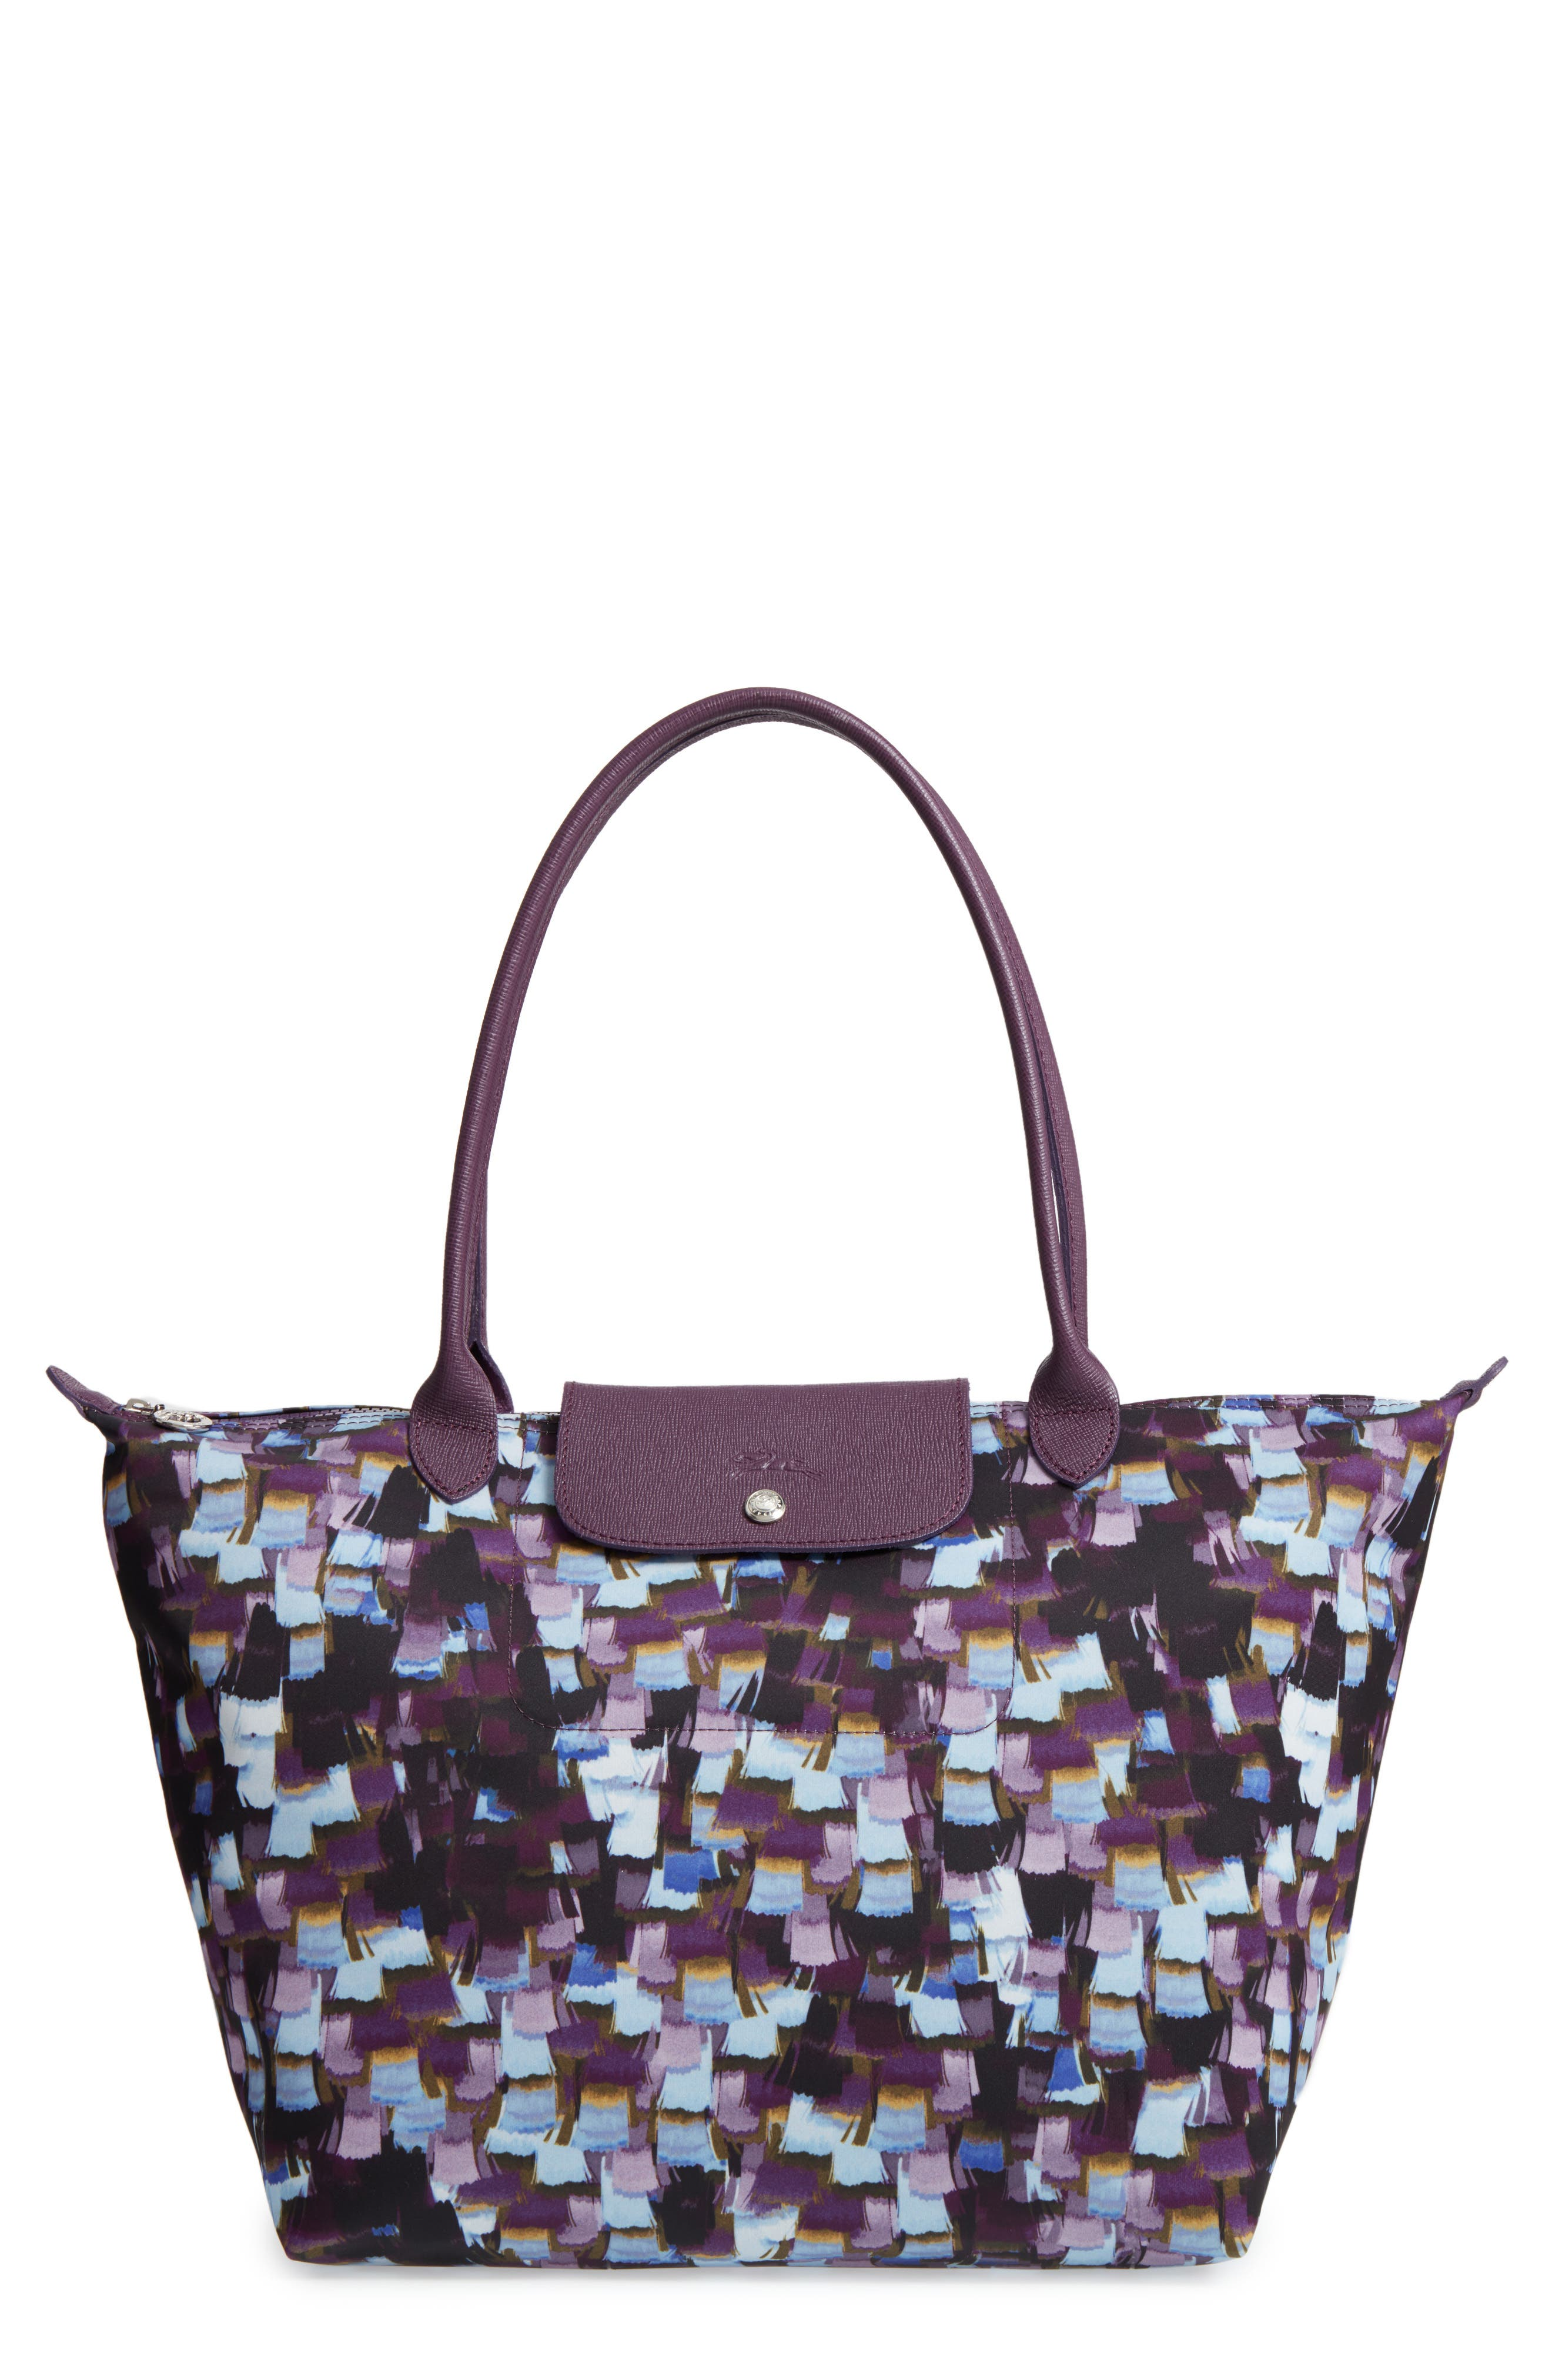 Le Pliage Neo - Vibrations Large Nylon Tote,                             Main thumbnail 1, color,                             Deep Purple